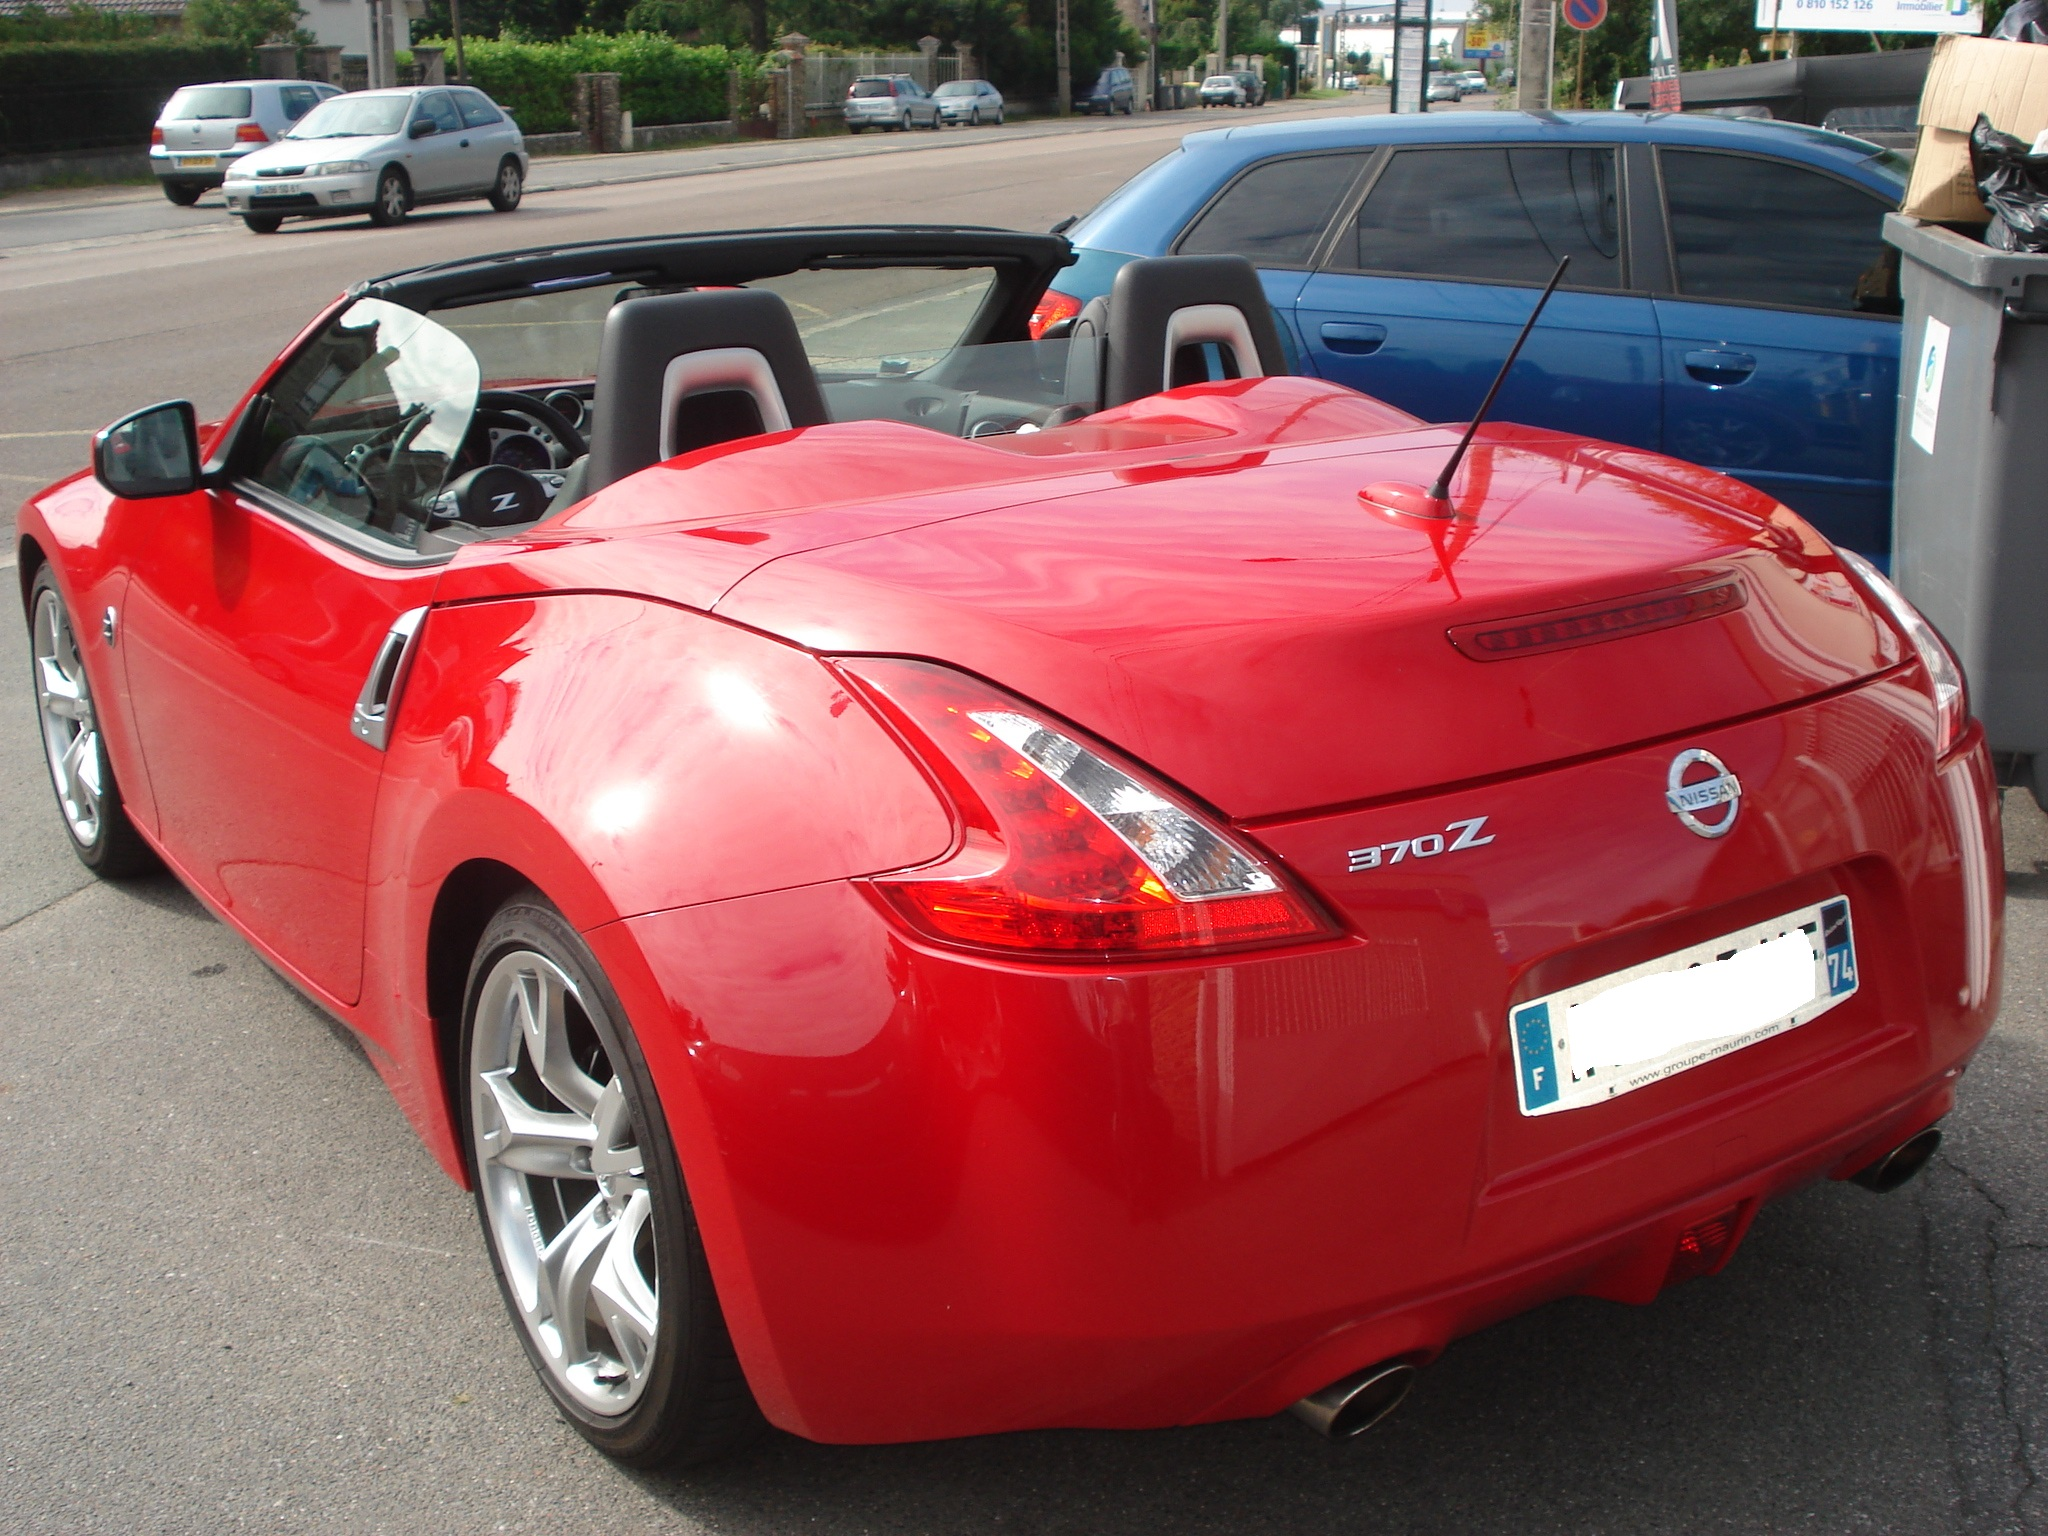 Left hand drive car NISSAN 370 Z (01/2010) - Red - lieu: